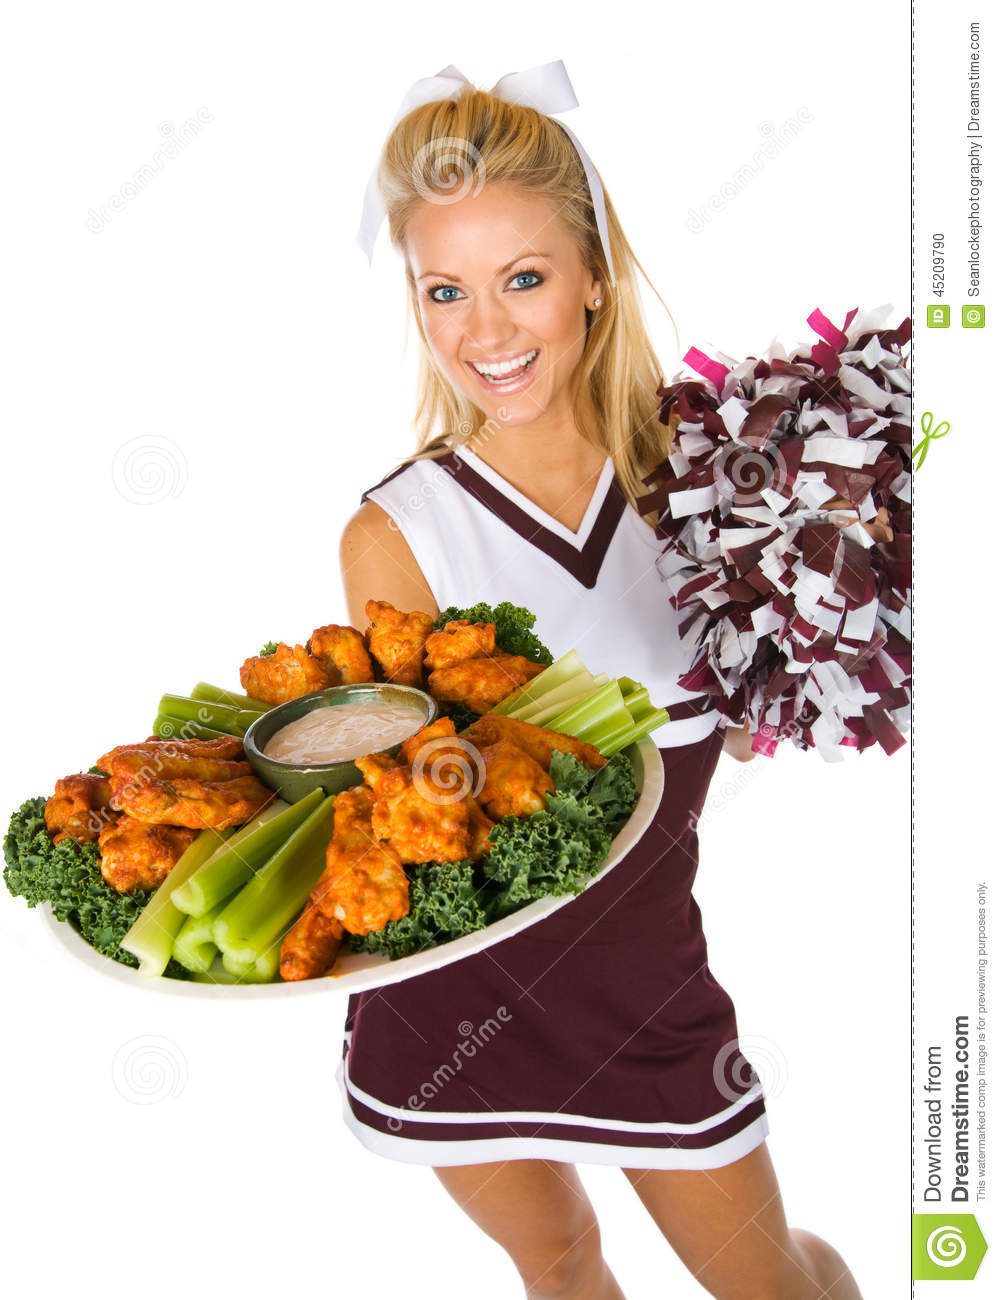 Voetbal: Cheerleader Holding Tray Of Chicken Wings